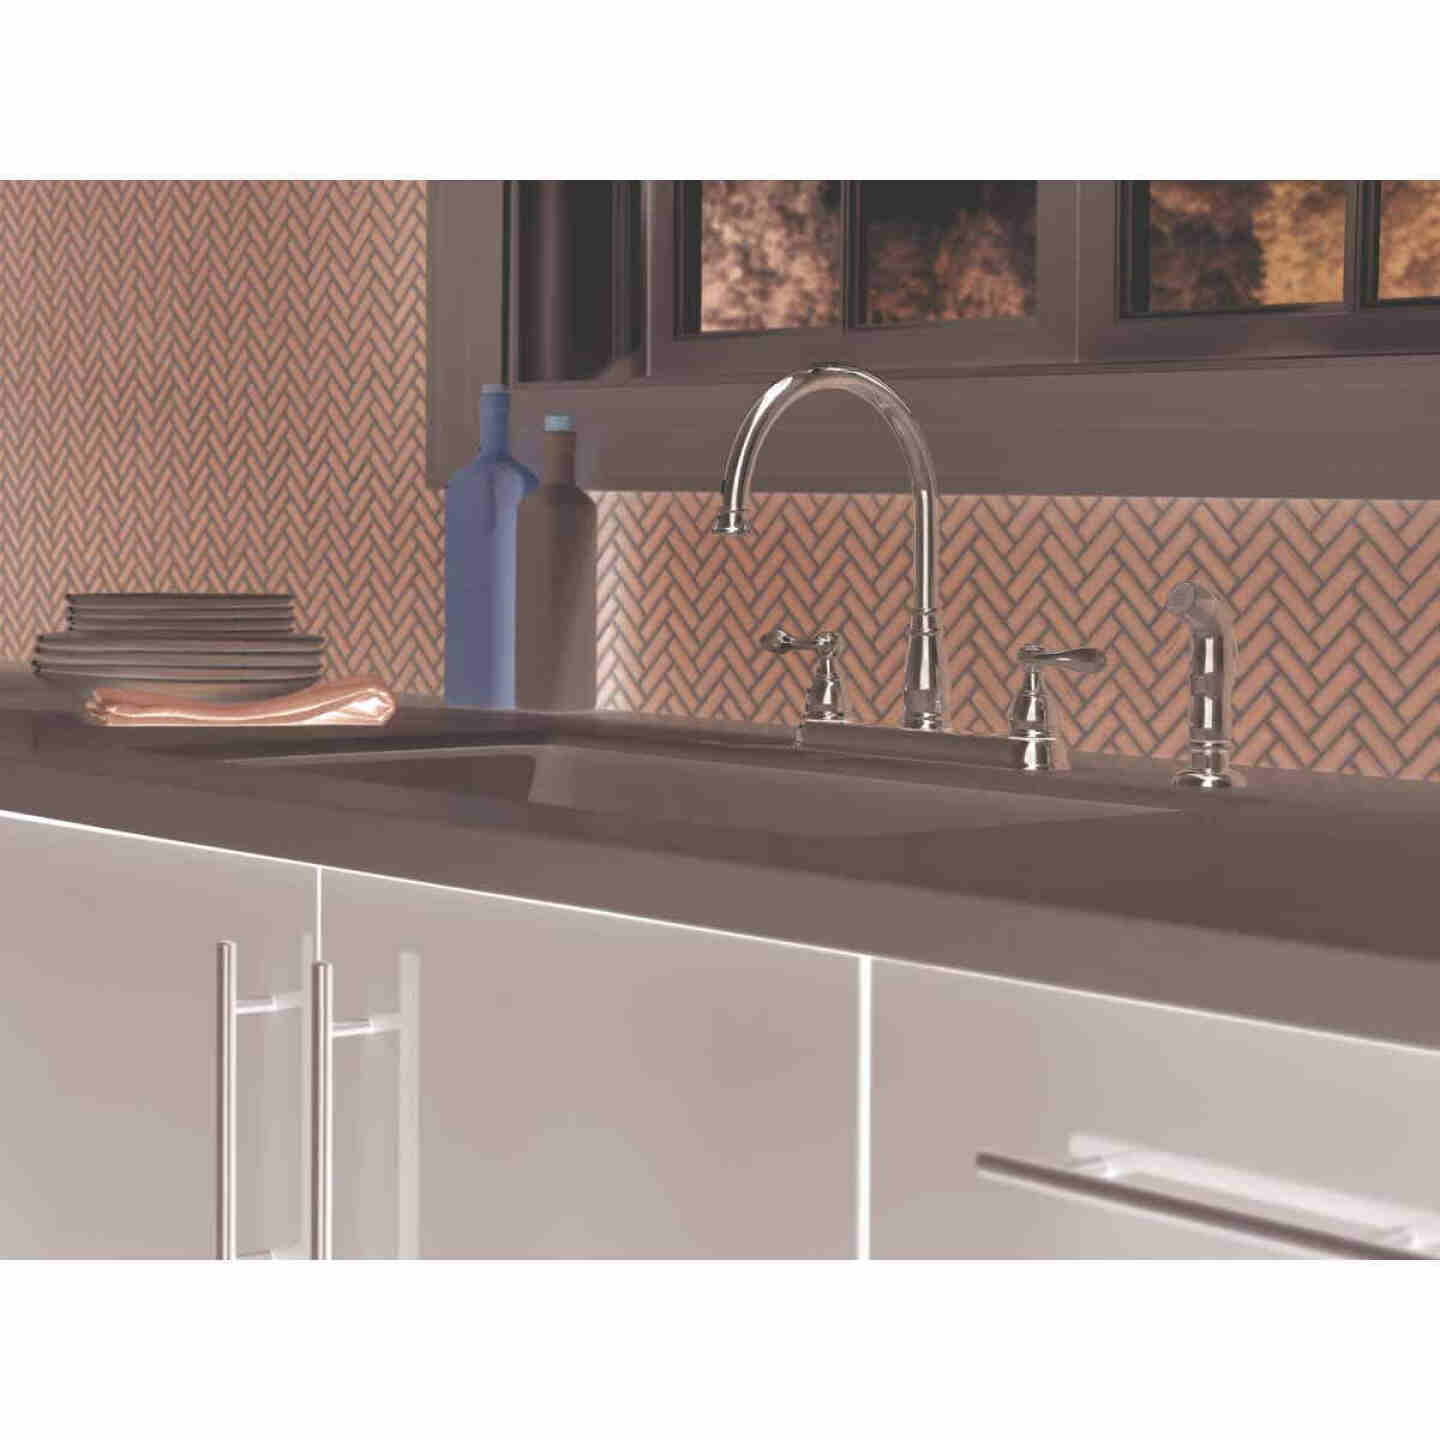 Delta Windemere Dual Handle Lever Kitchen Faucet with Side Spray, Stainless Image 2